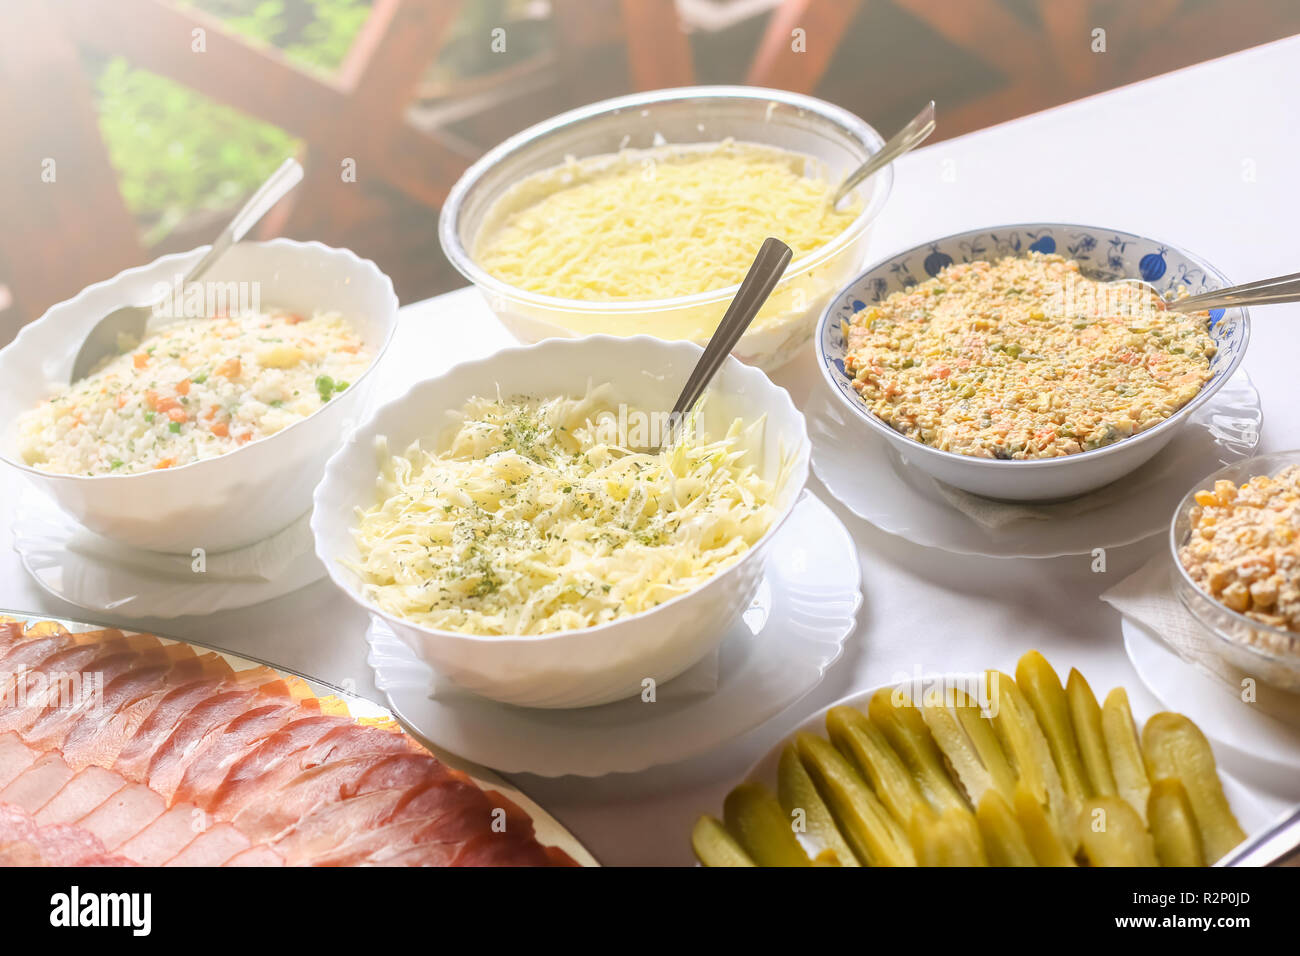 Different types of delicious salads. Wedding day food table. Stock Photo